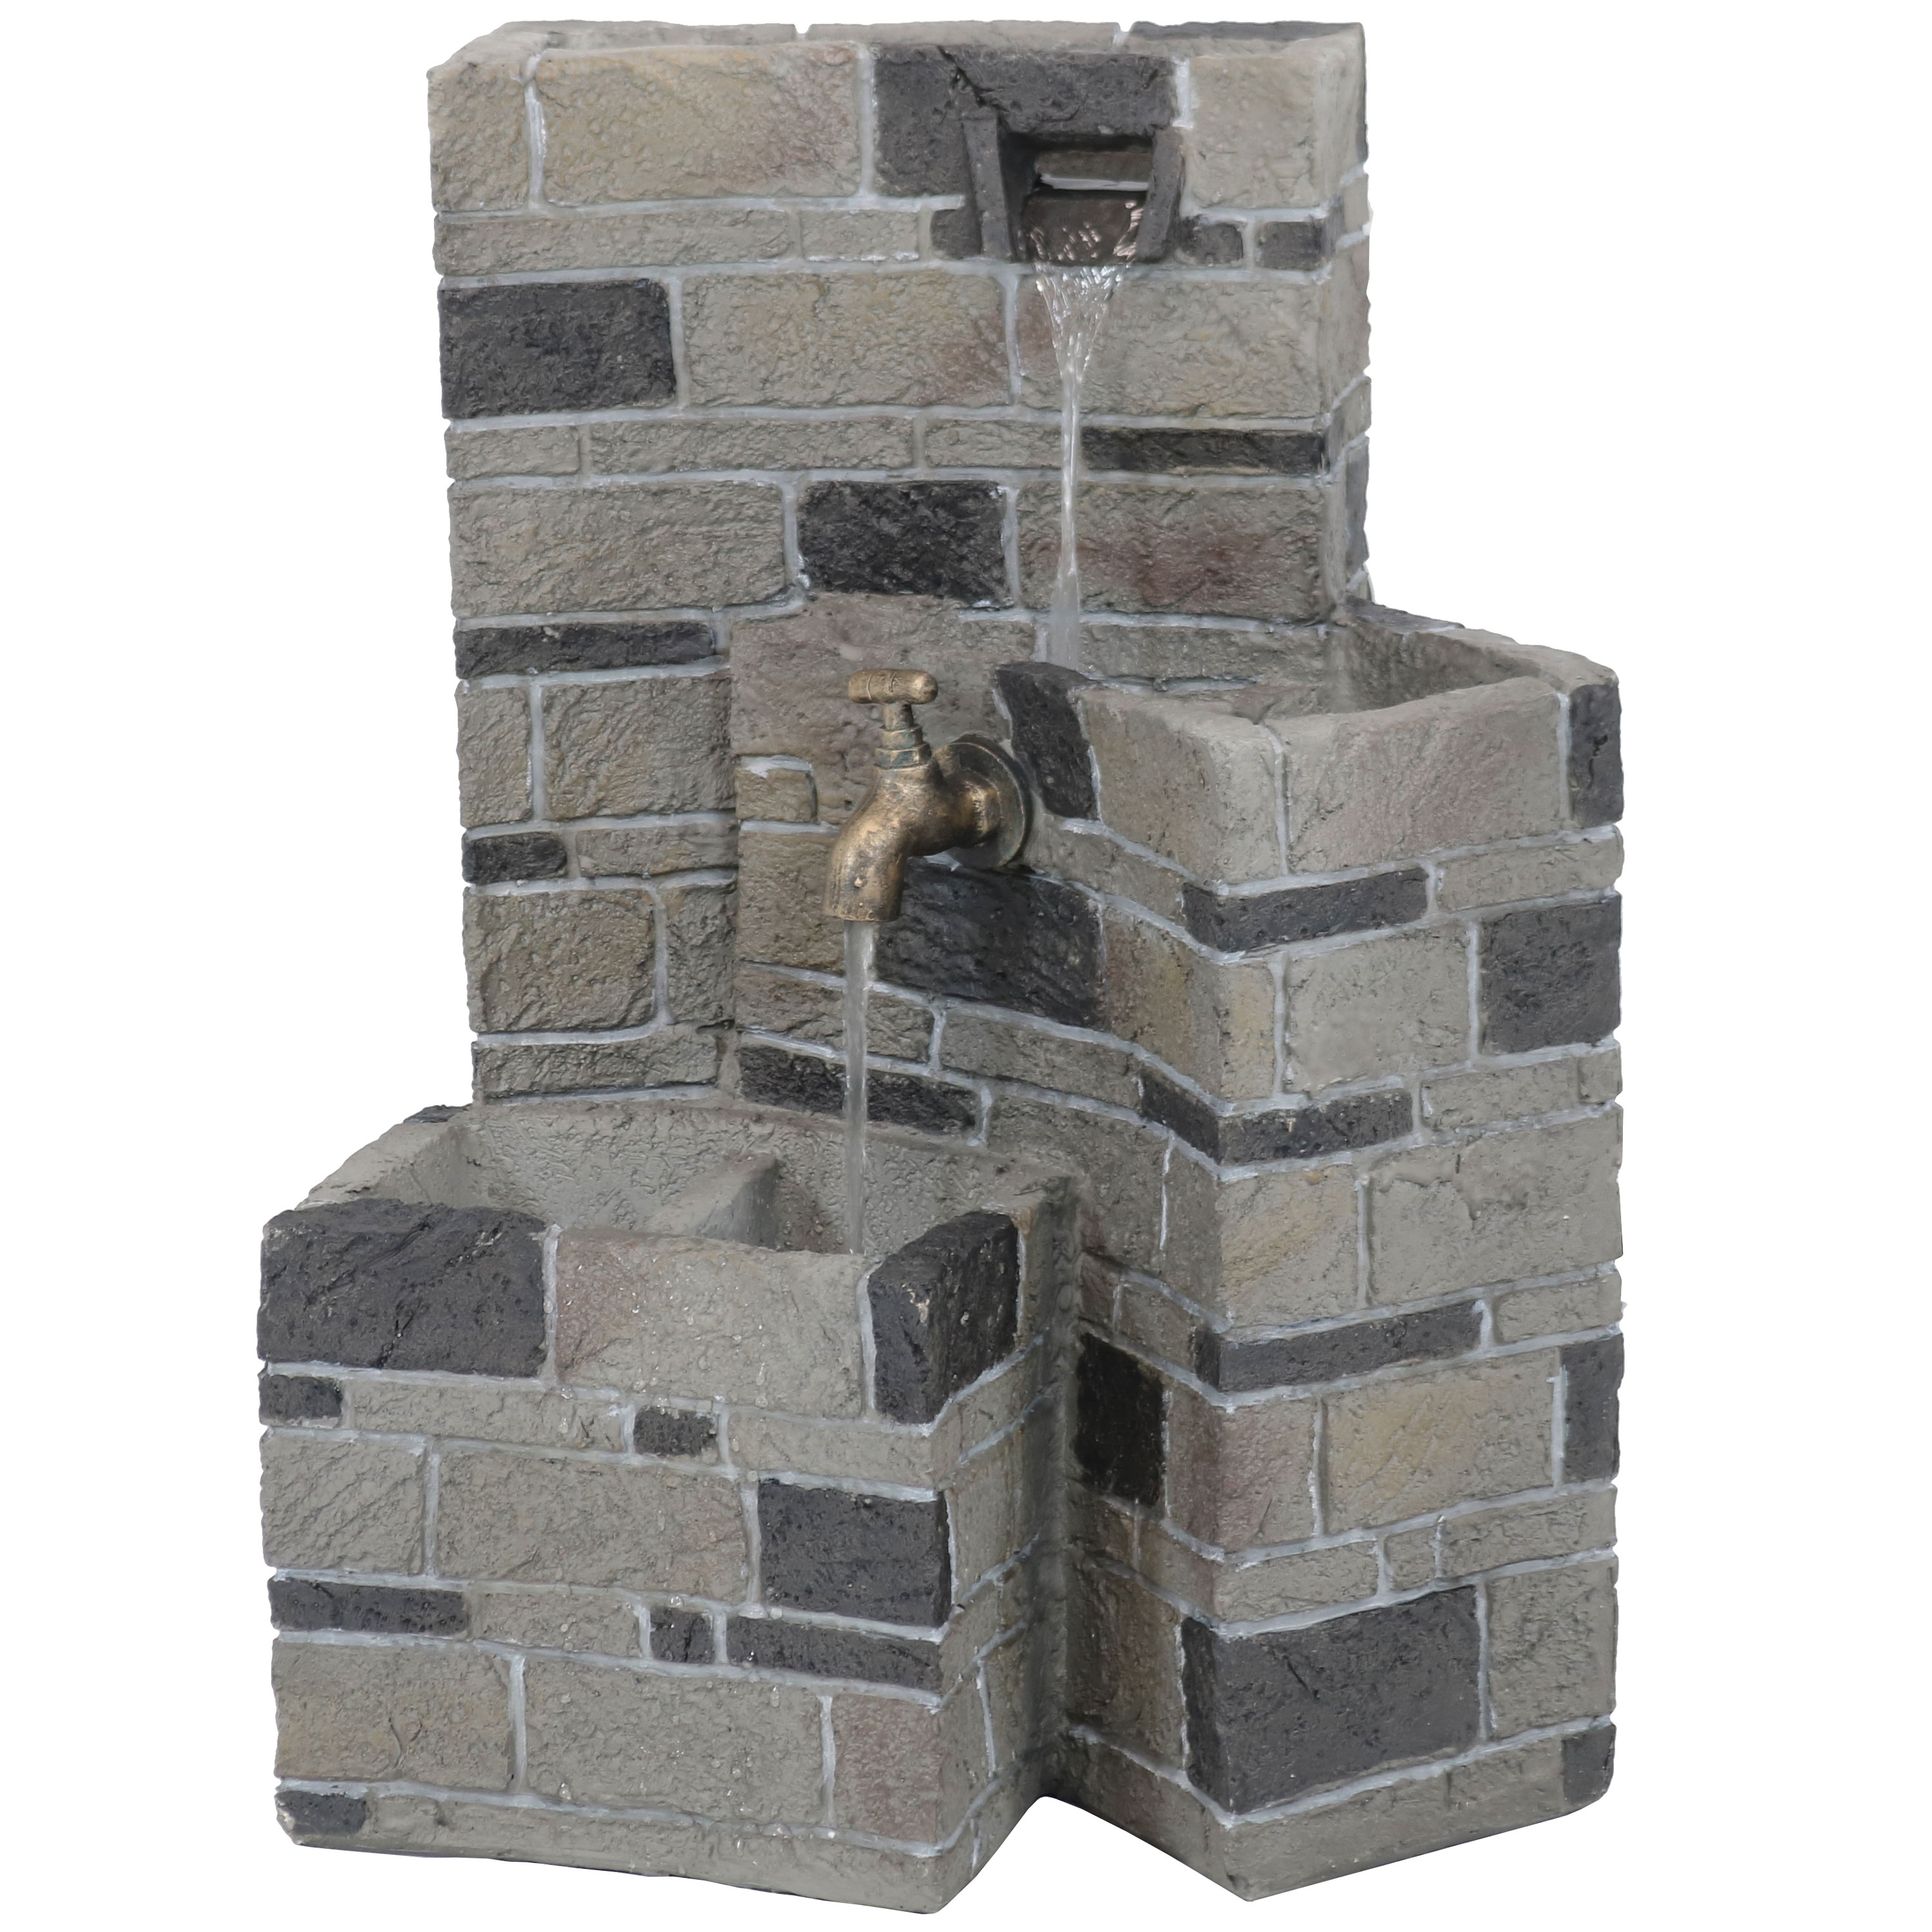 Sunnydaze 3-Tier Brickwork Outdoor Waterfall Fountain with Spigot, Cascading Garden and Patio Water Feature, 23 Inch Tall